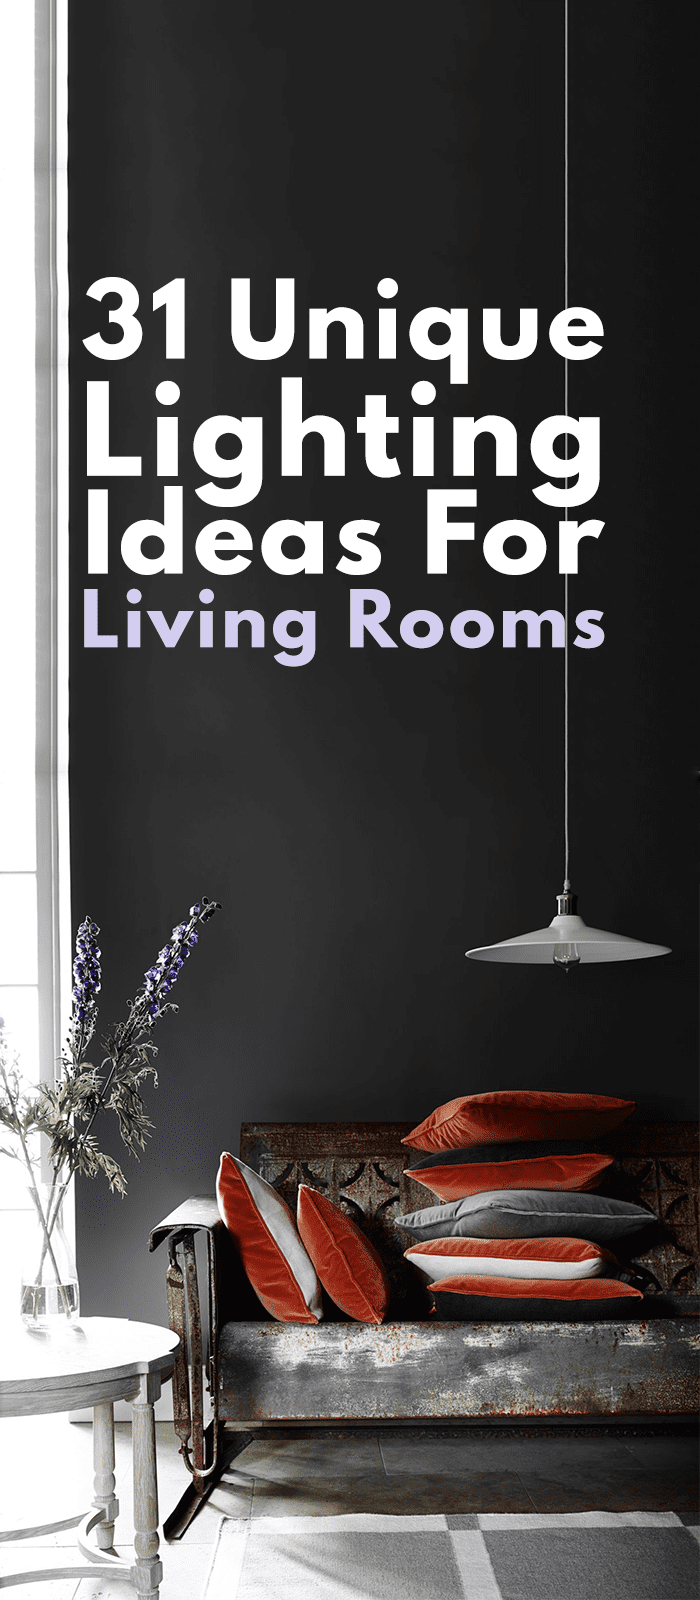 Unique Lighting Ideas For Living Rooms.